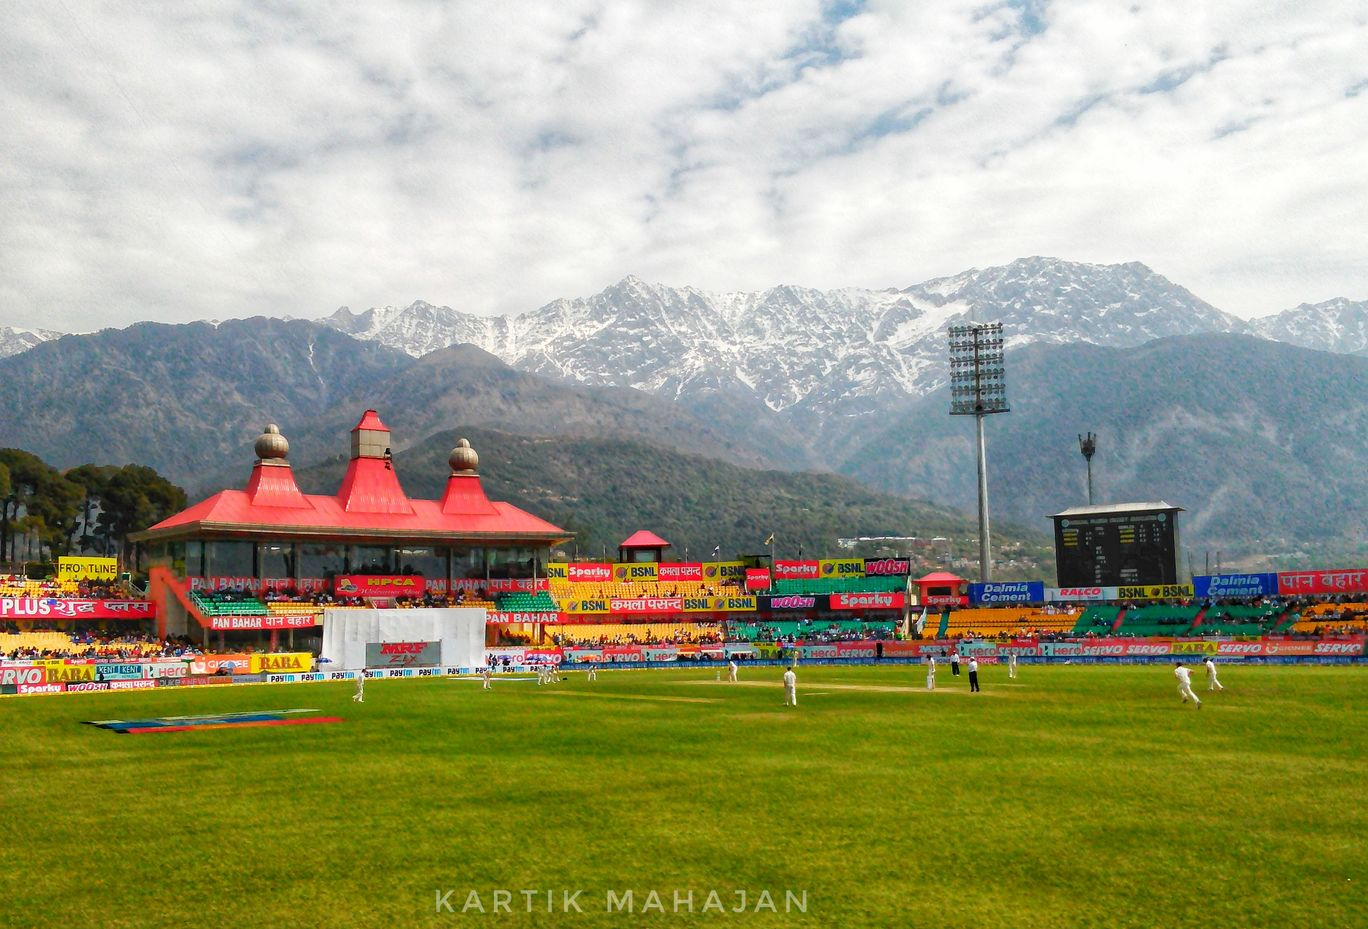 Photo of Himachal Pradesh Cricket Association Stadium Dharamshala By Kartik Mahajan